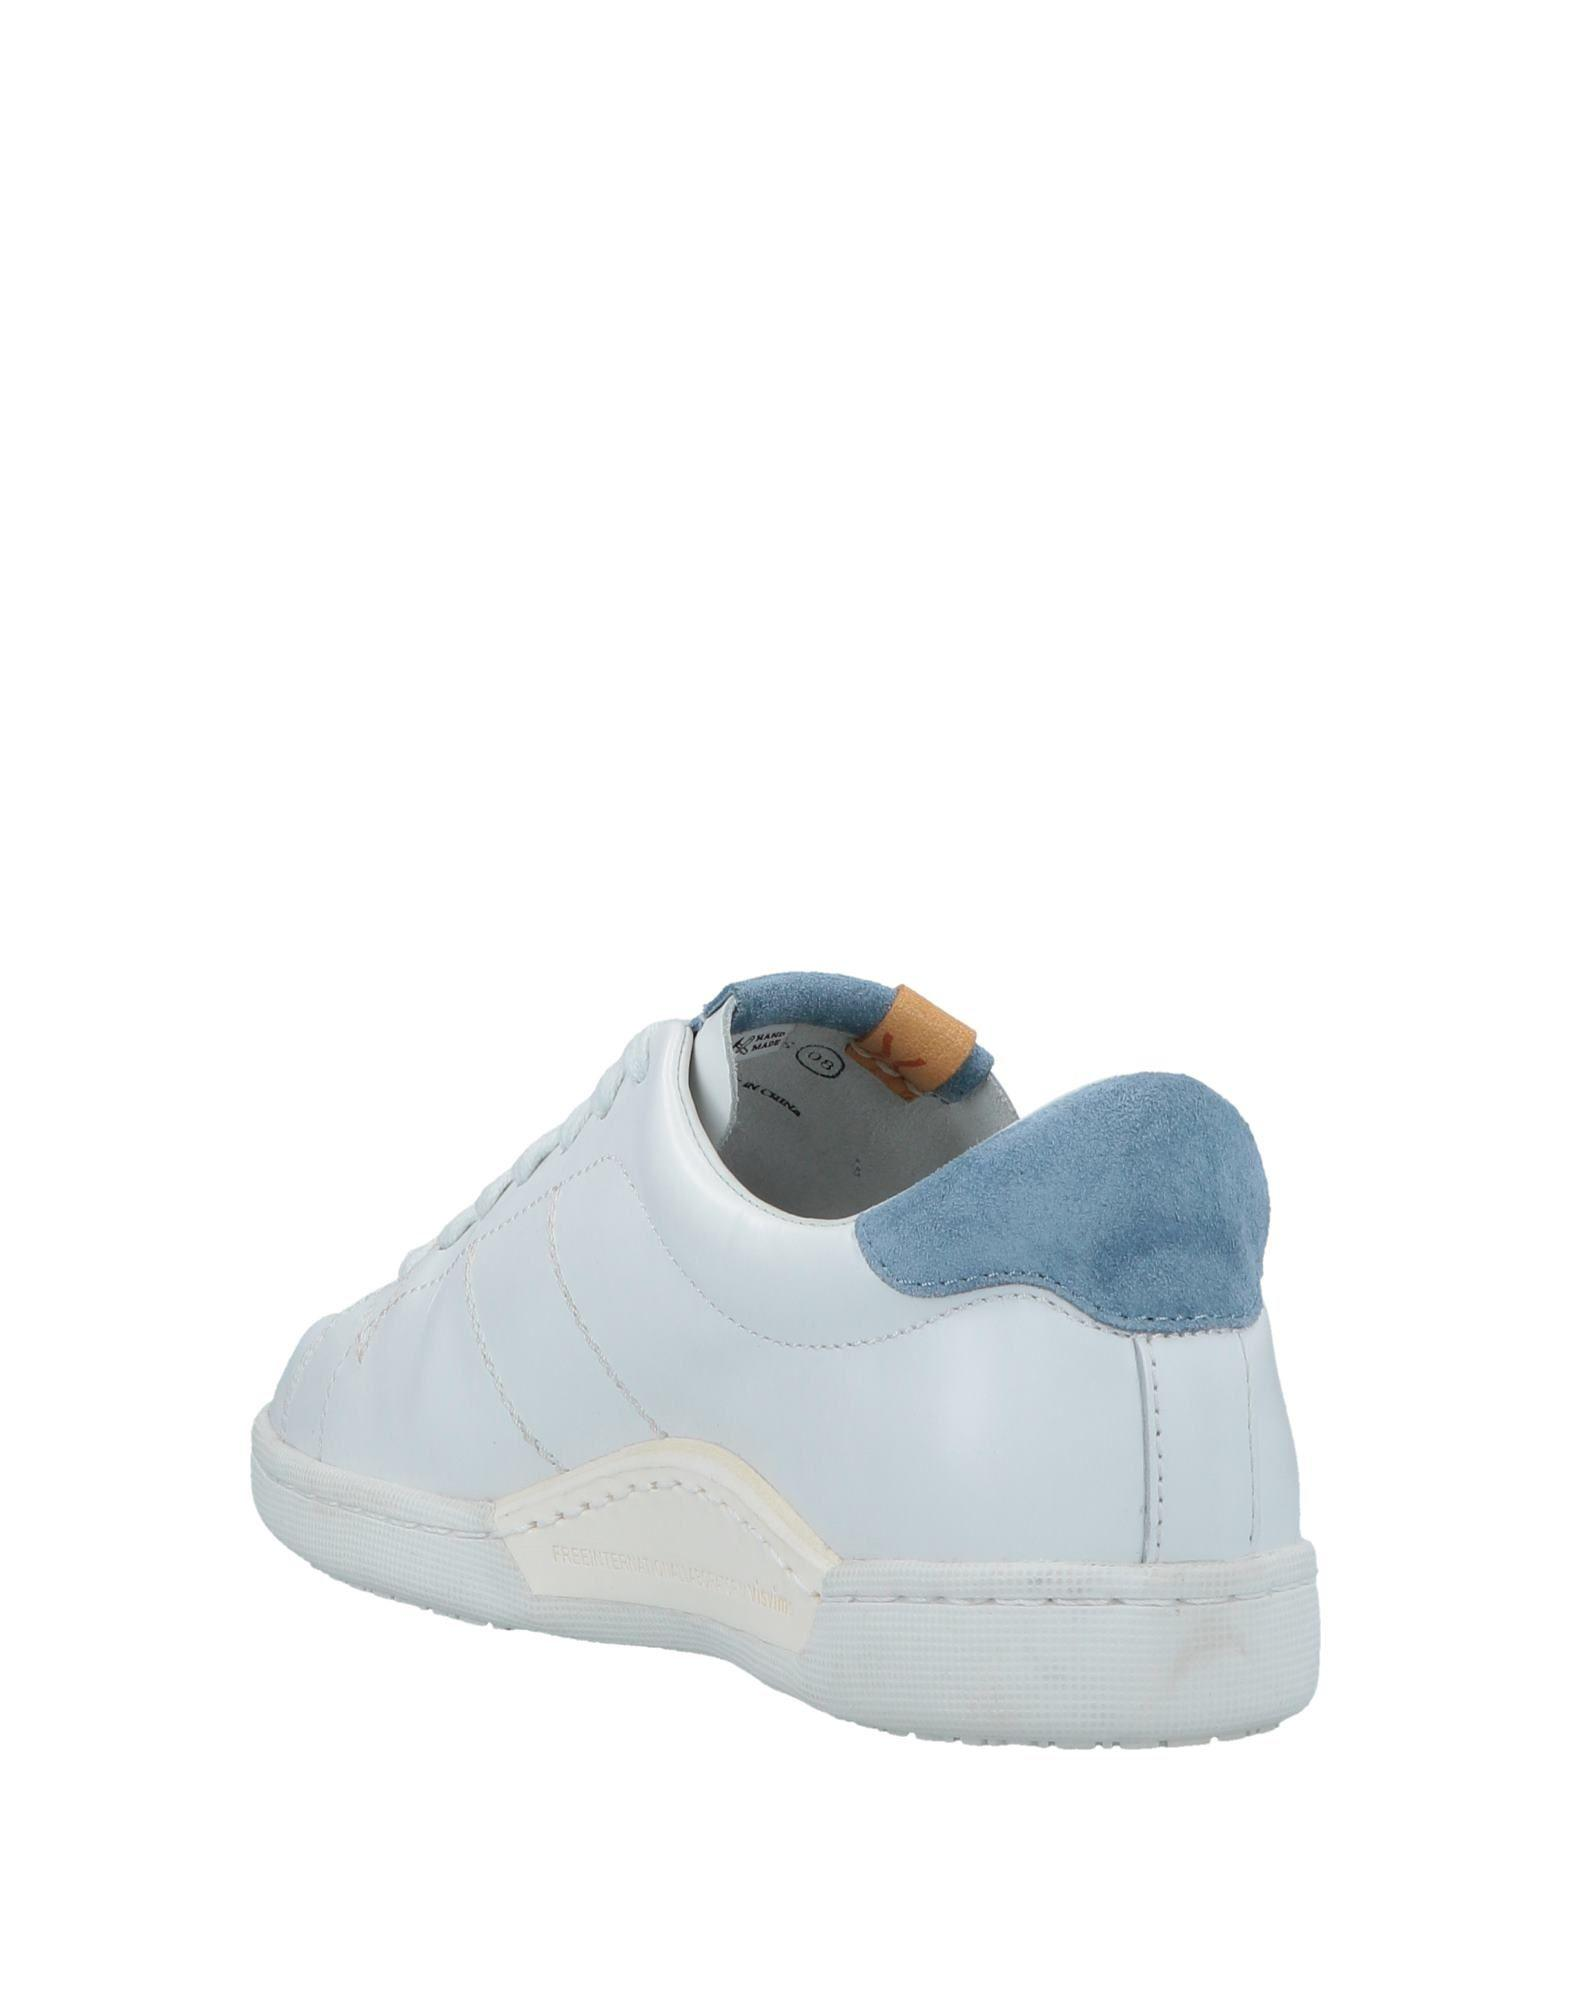 c9f419a7142 Lyst - Visvim Low-tops   Sneakers in Blue for Men - Save 31%